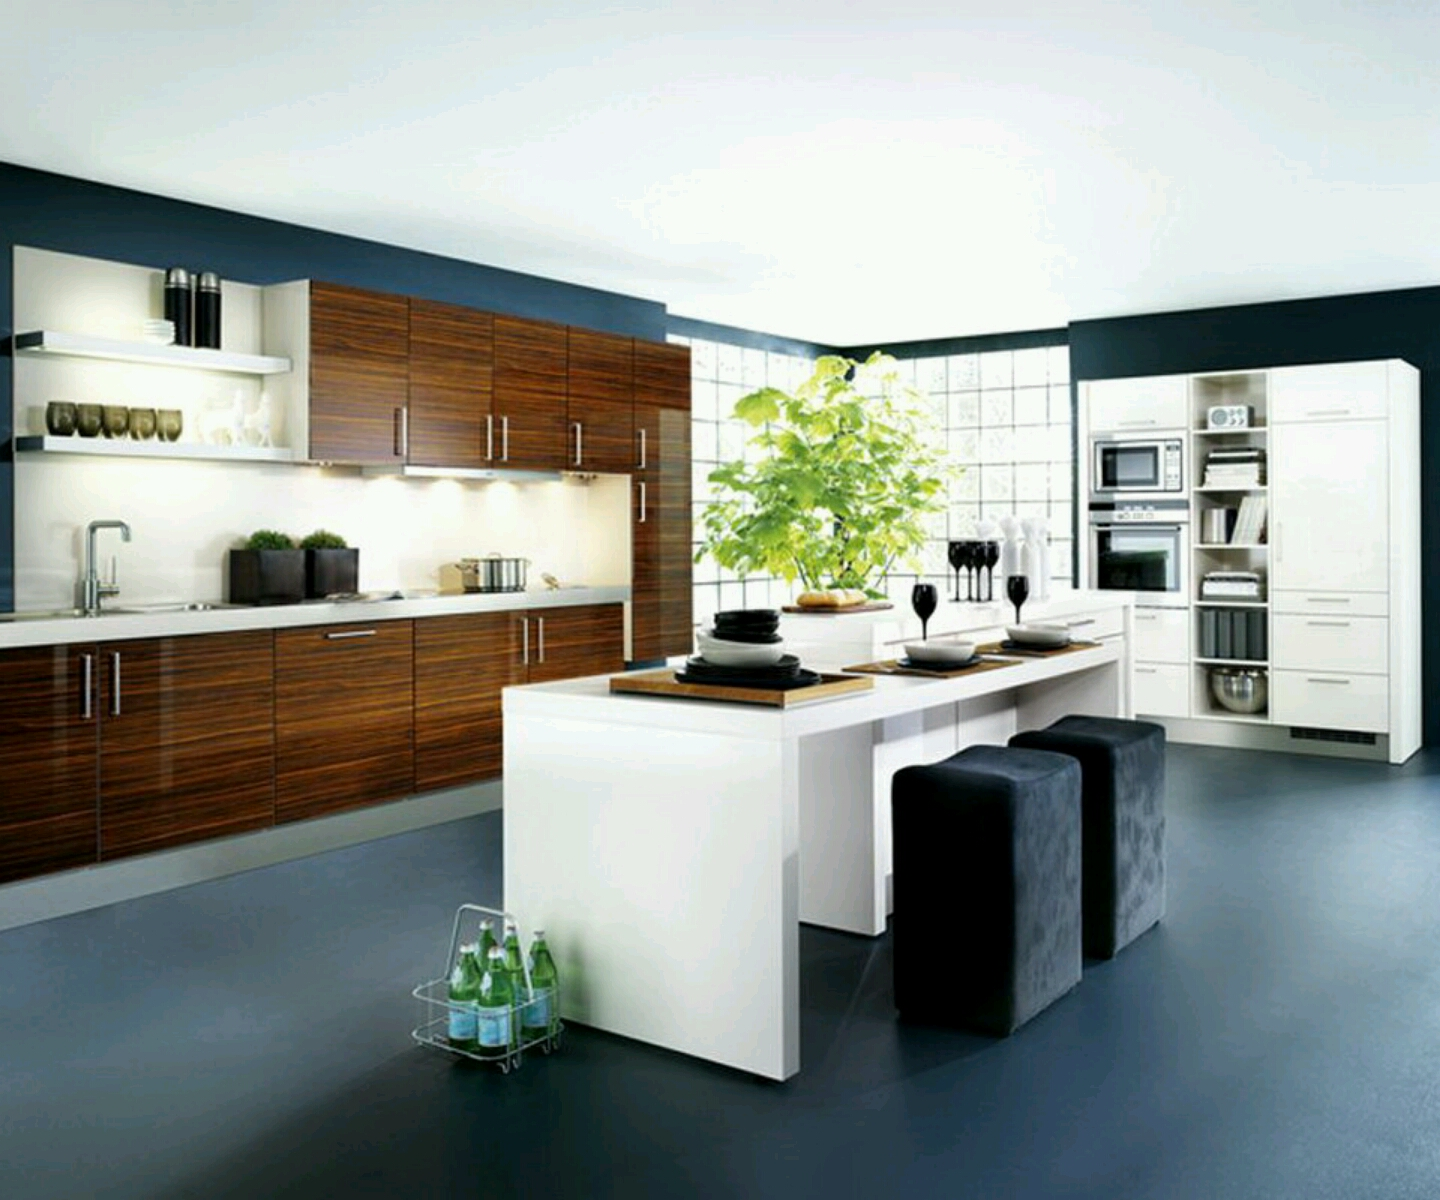 New home designs latest kitchen cabinets designs modern for Kitchen cabinets modern style